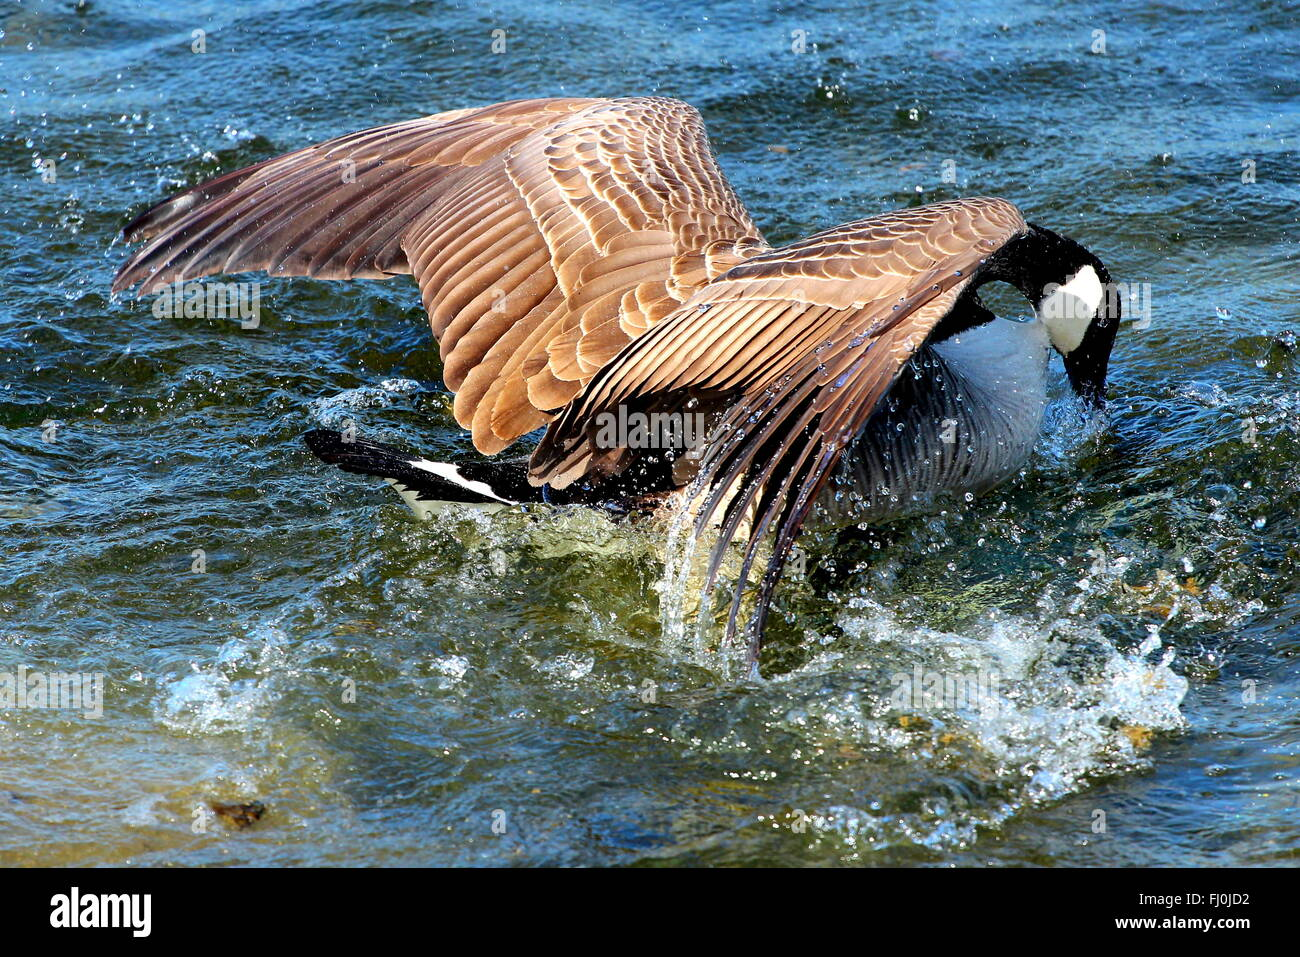 A Canada goose landing on the water. - Stock Image